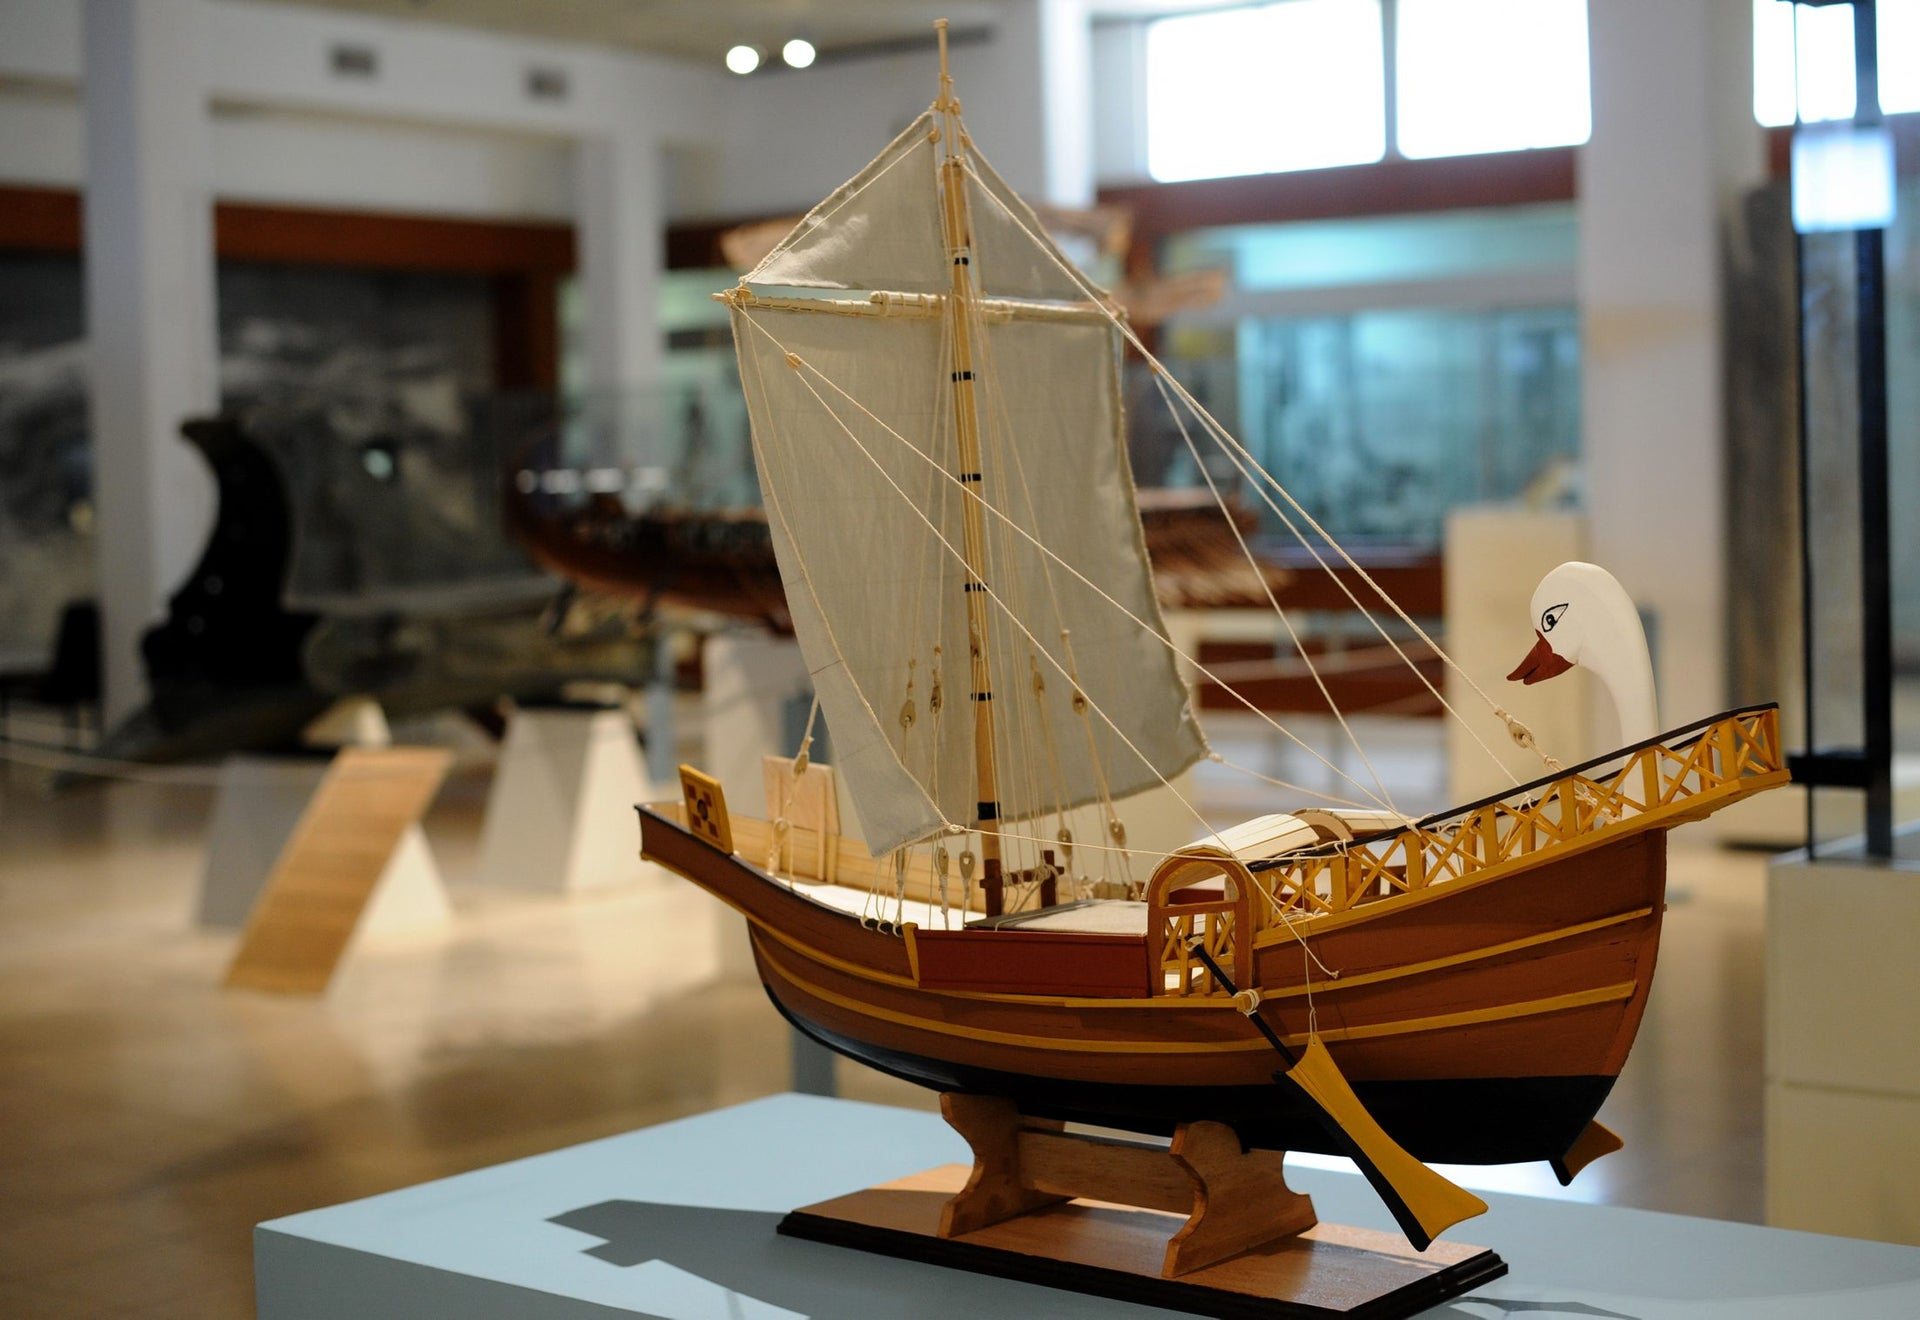 A precise wooden model of the ship in the mosaic.